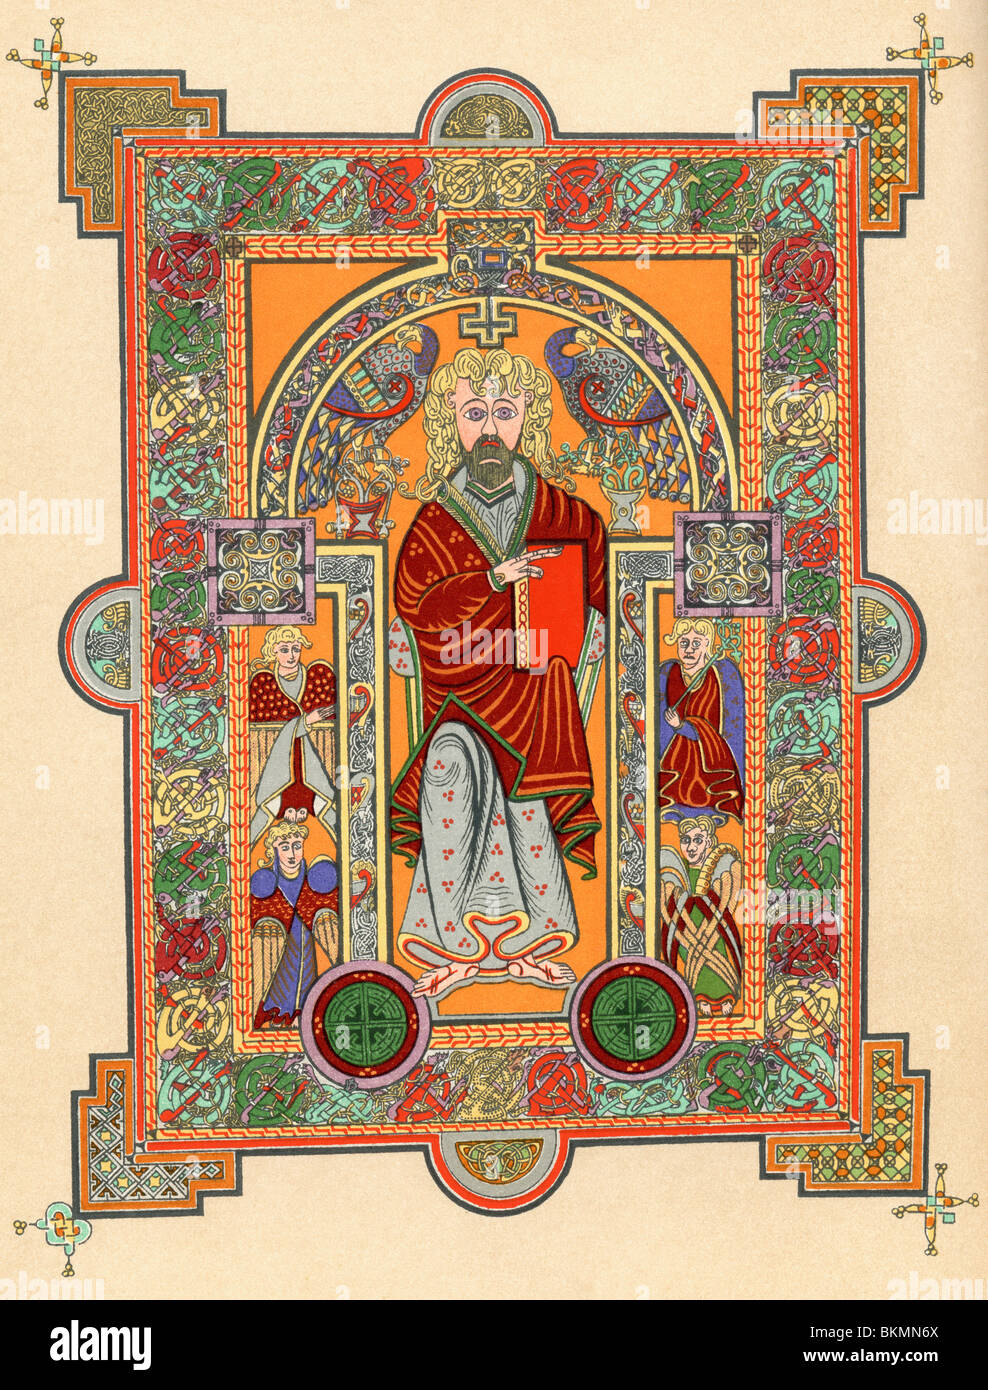 Christ with four angels, introductory page to the Gospel of St. Matthew, from the Book of Kells, c.800. - Stock Image